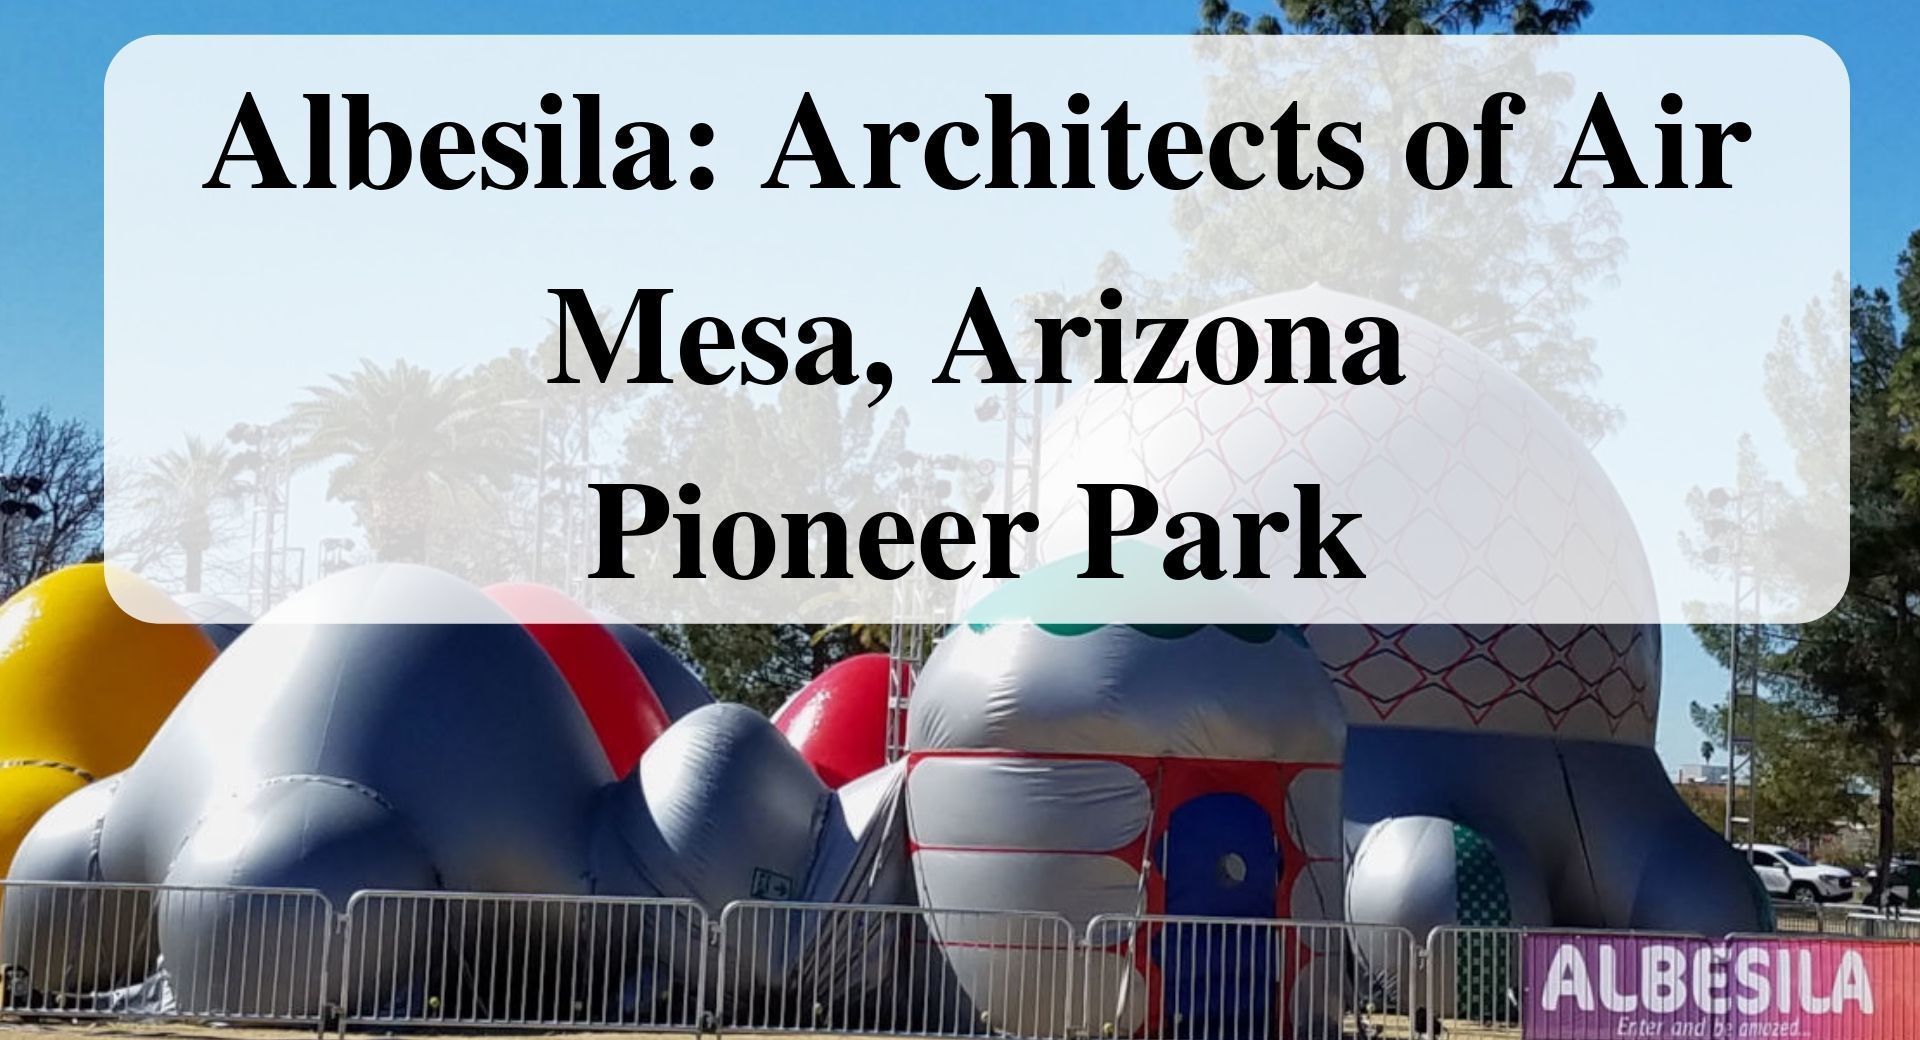 Albesila_ Architects of Air Mesa, Arizona Pioneer Park